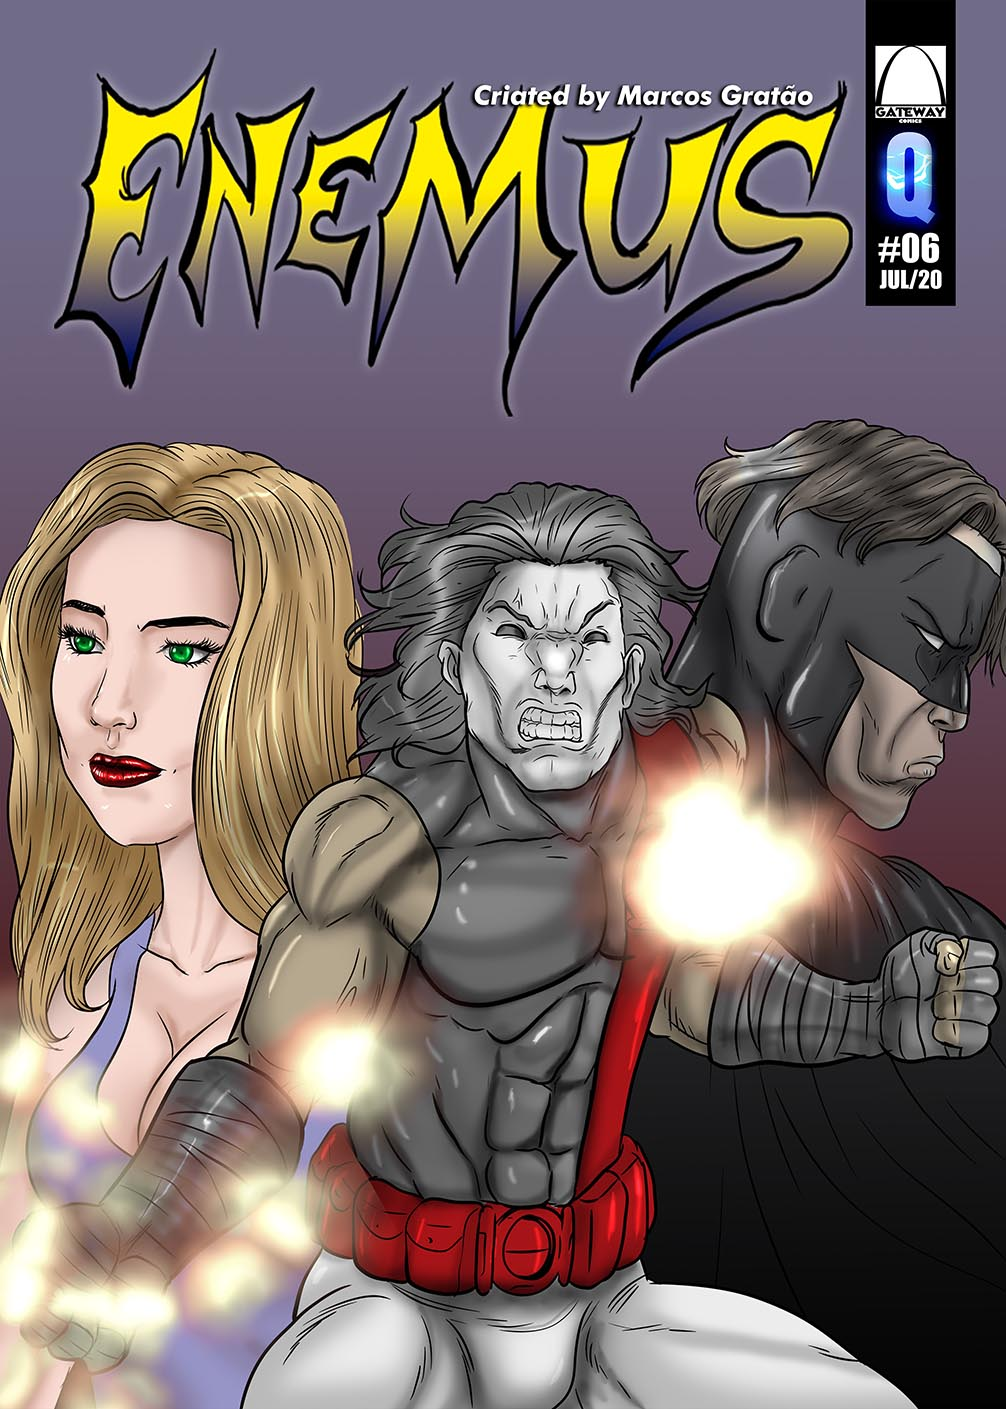 Enemus #5 Cover